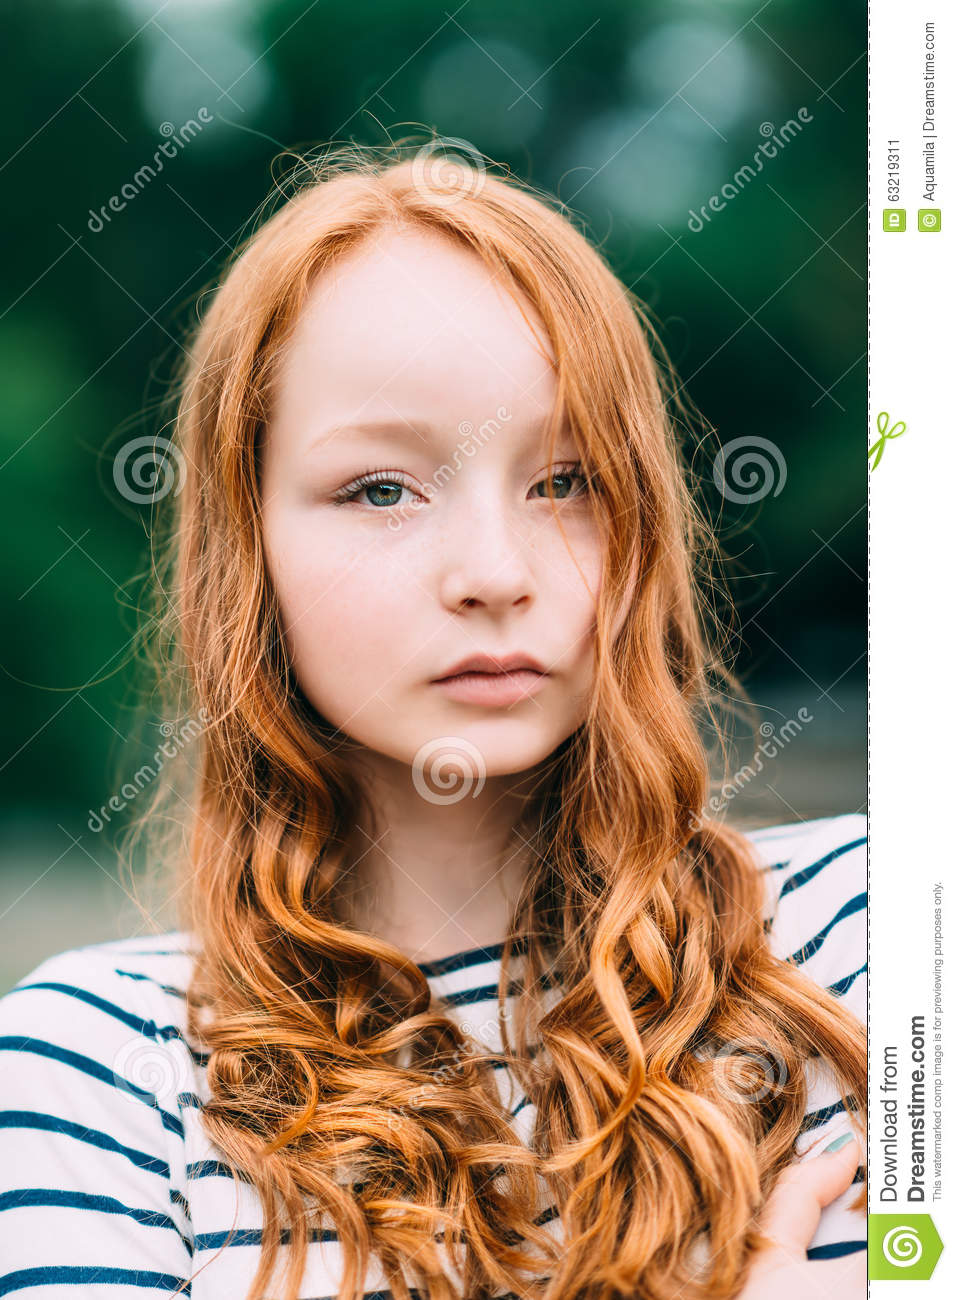 A Beautiful Girl With Green Eyes And Long Curly Red Hair